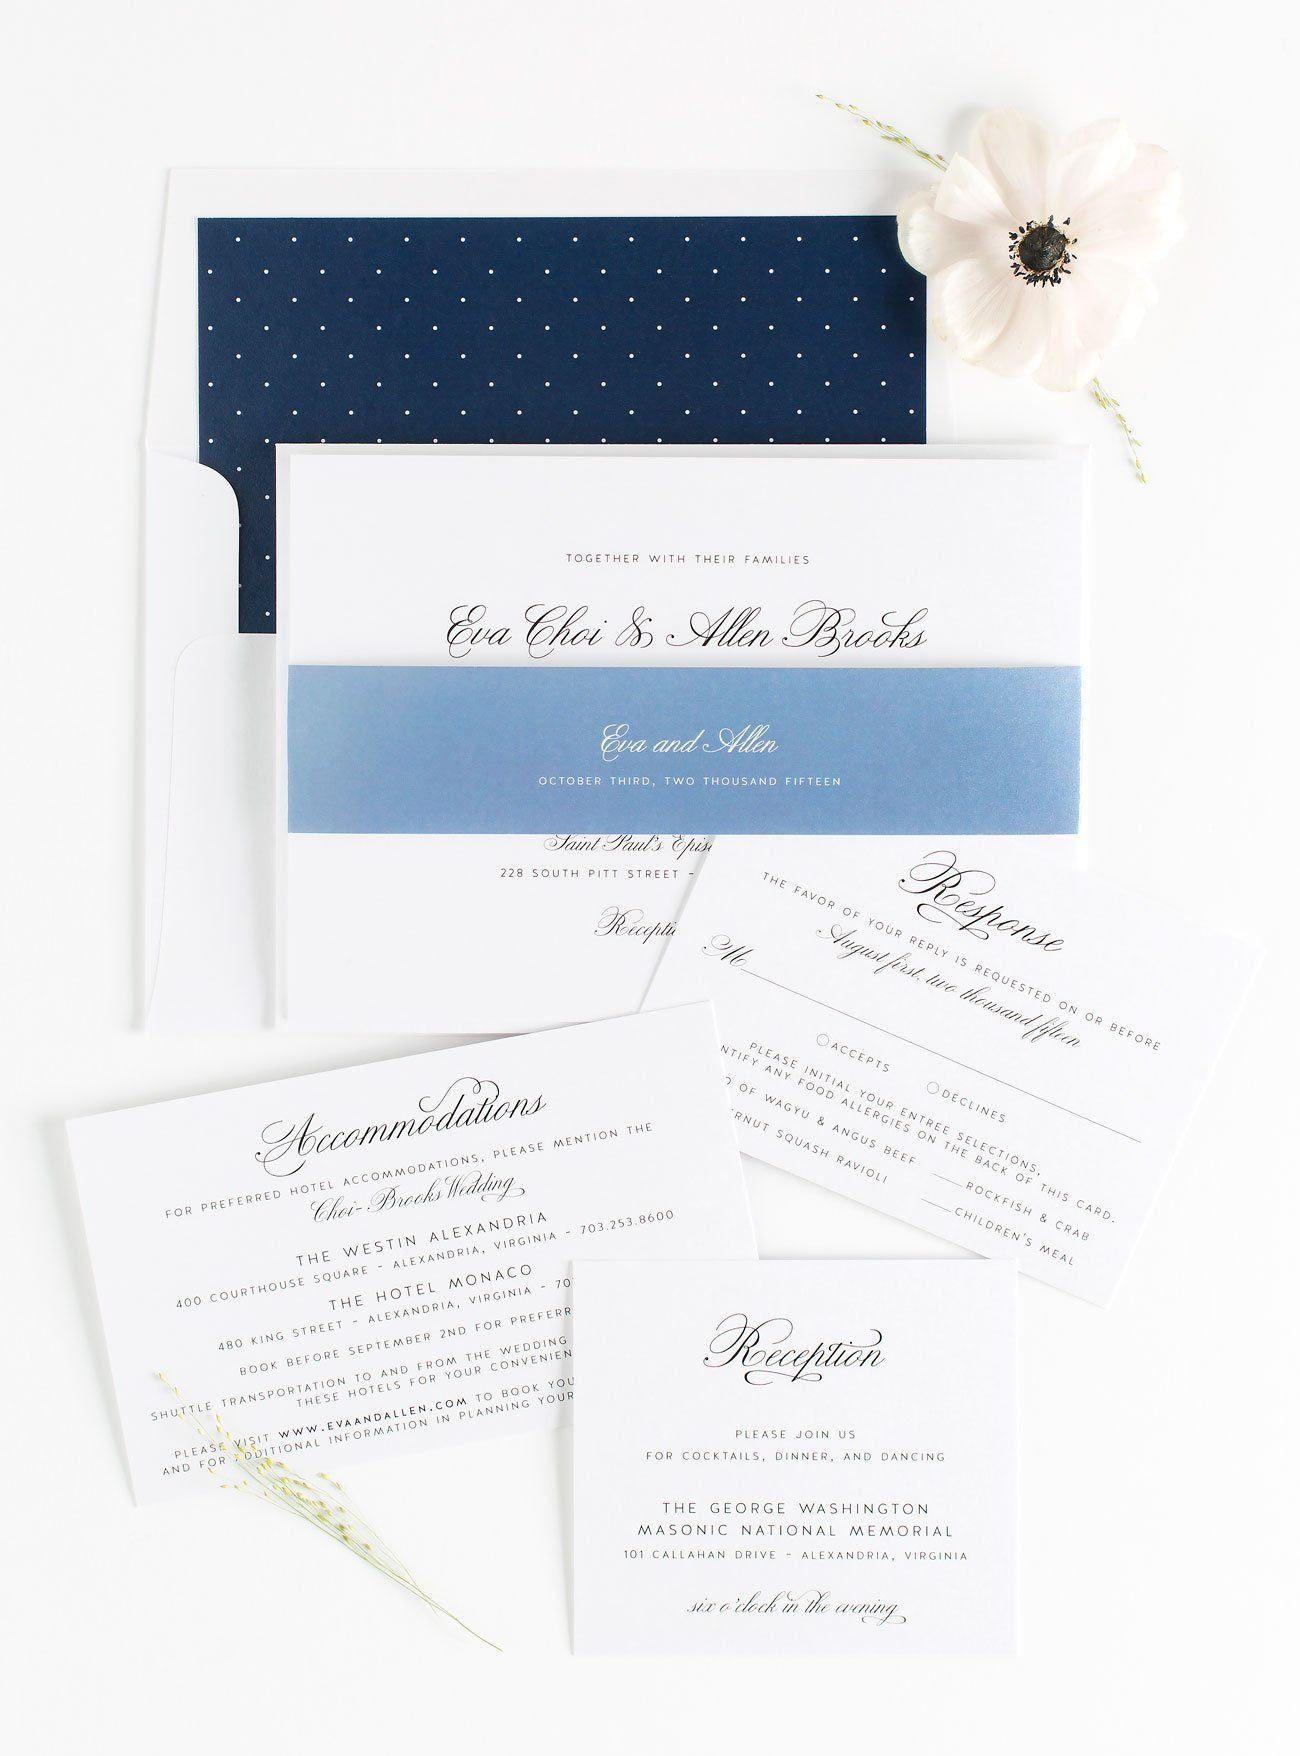 Dusty Blue Wedding Invitations with Navy accents